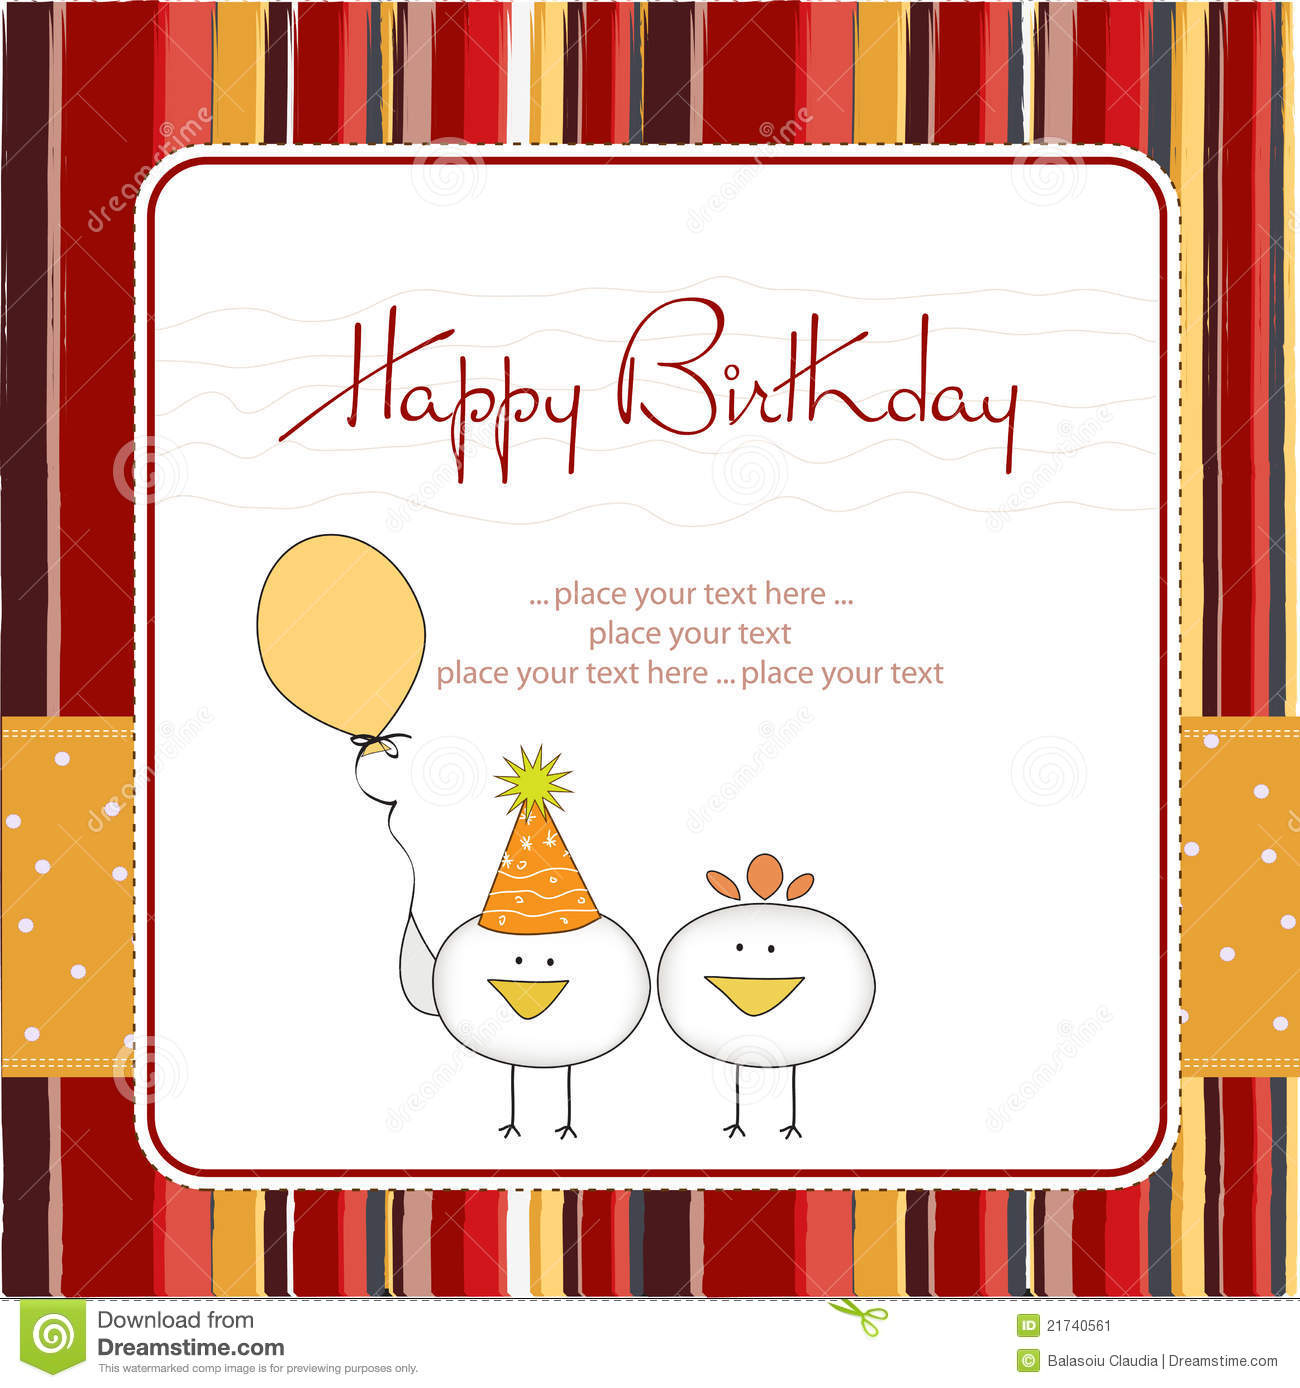 birthday card party ; funny-birthday-party-greeting-card-21740561